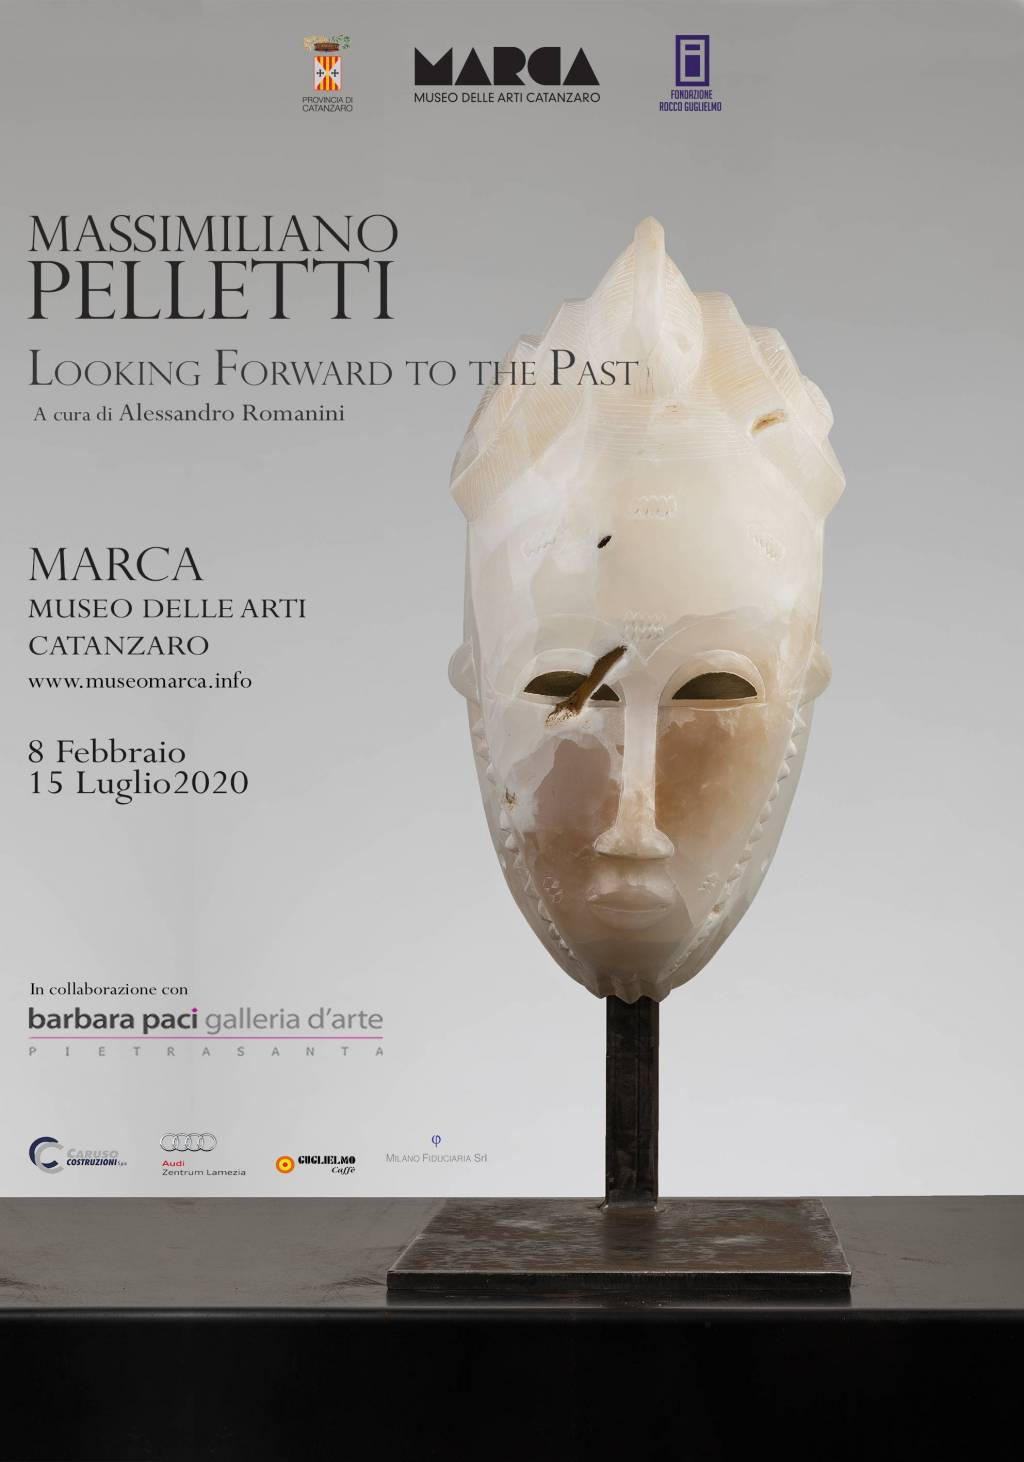 Massimiliano Pelletti - Looking forward to the Past - MARCA Catanzaro